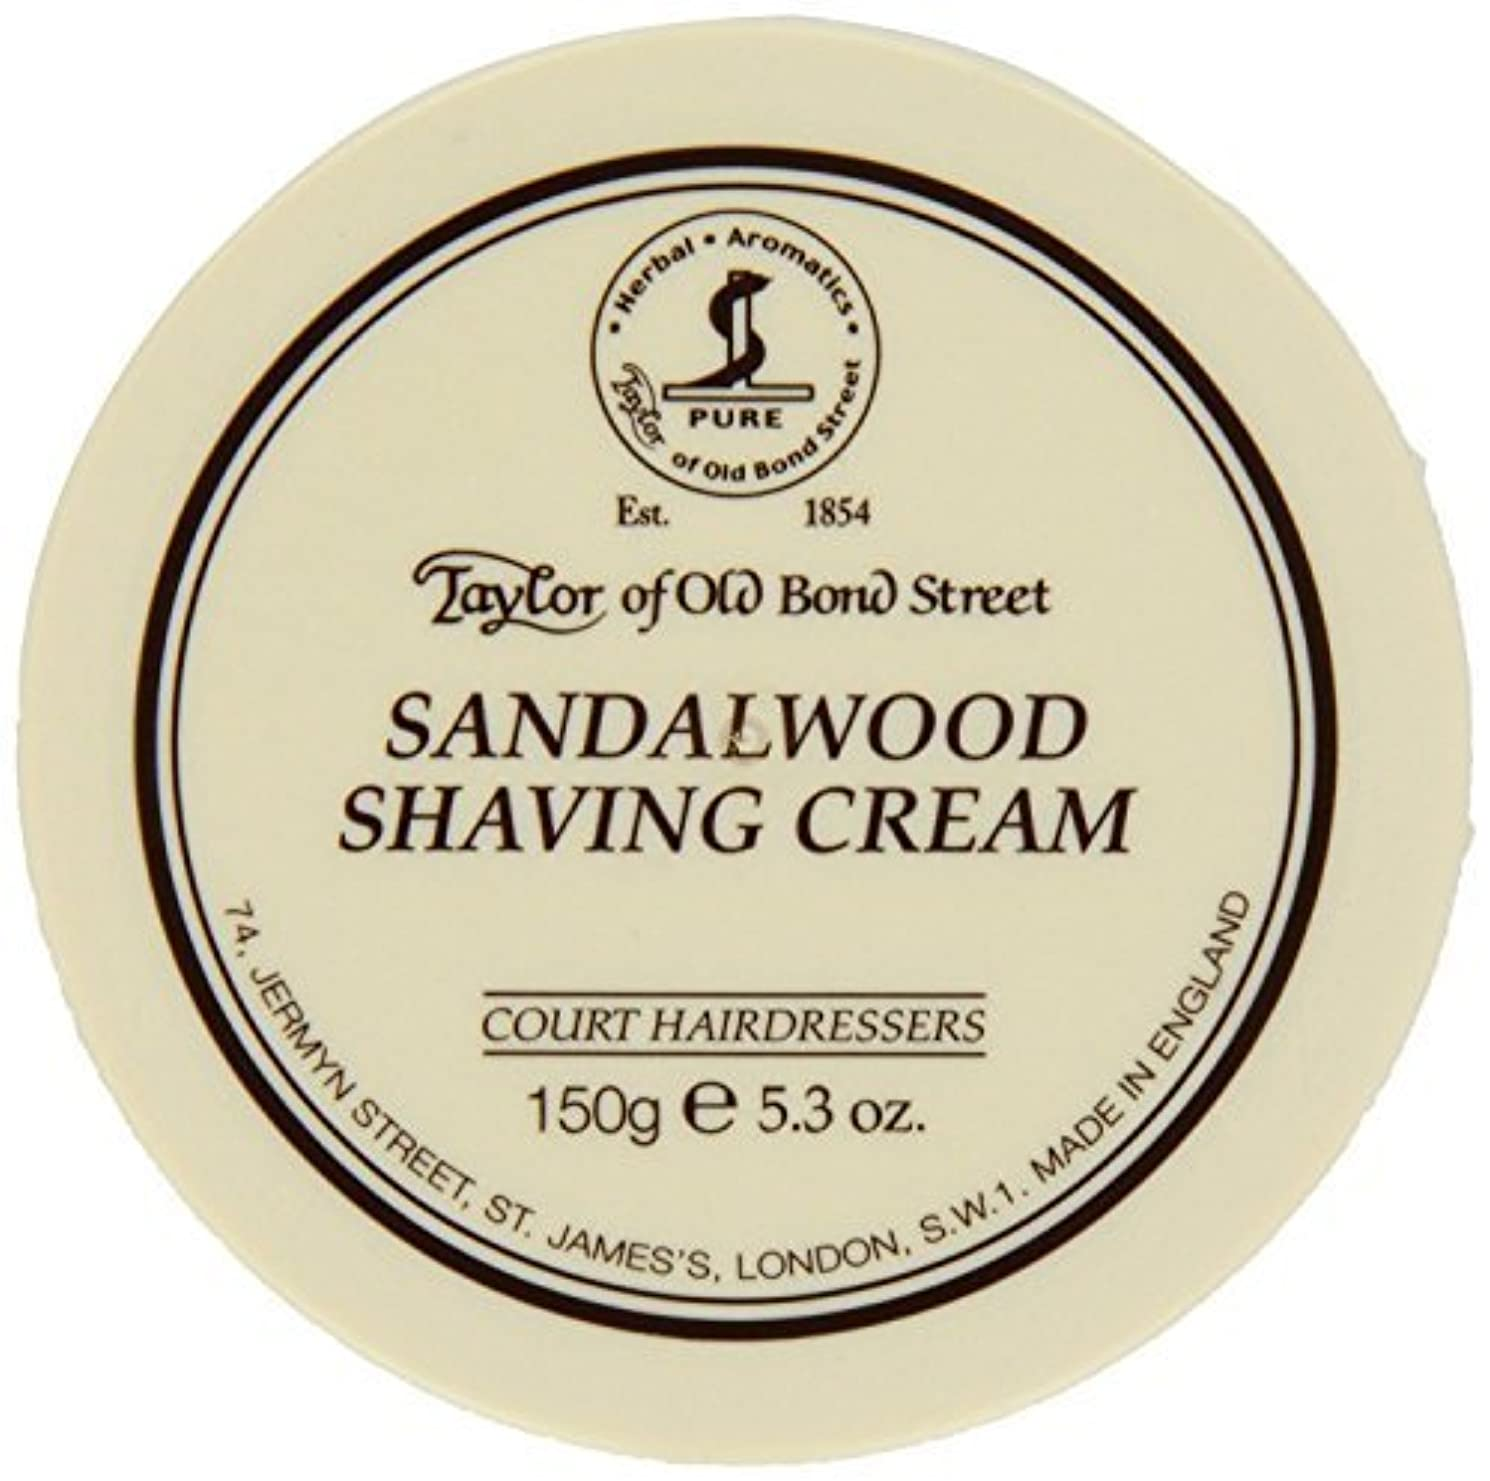 ビデオ価値のない感覚Taylor of Old Bond Street SHAVING CREAM for SANDALWOOD 150g x 2 Bowls by Taylor of Old Bond Street [並行輸入品]